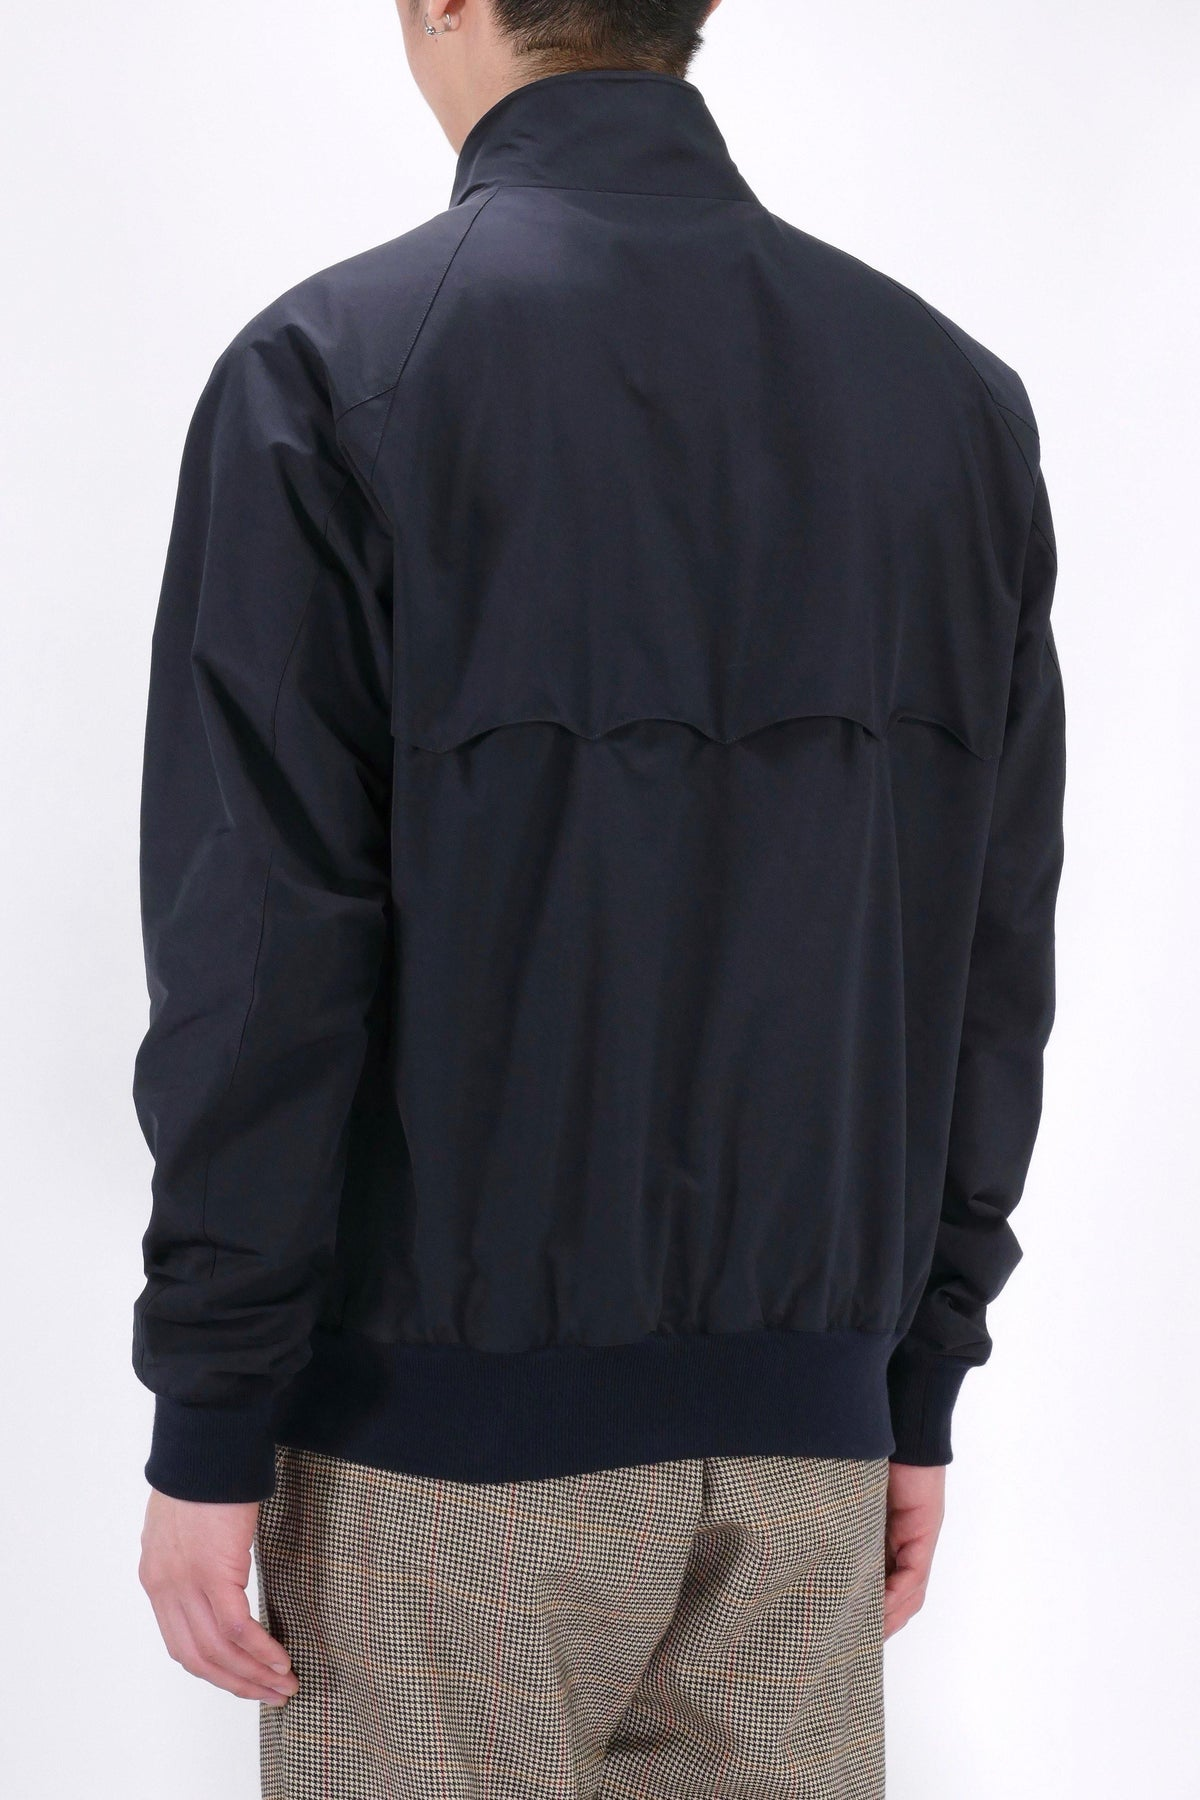 Baracuta Mens Wind Jacket G9 - Dark Navy